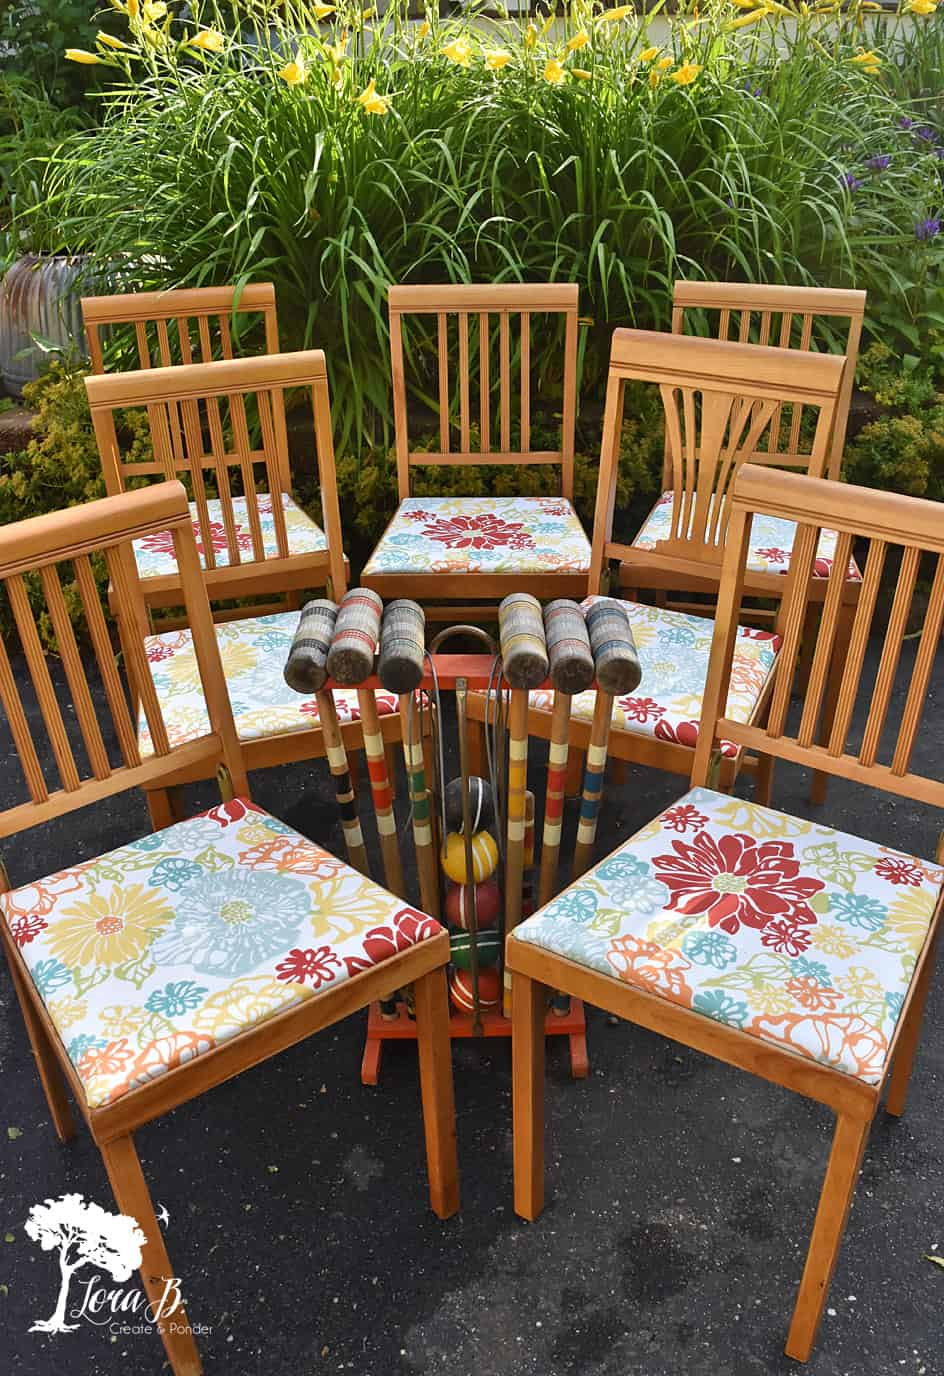 Vintage chairs, refreshed.